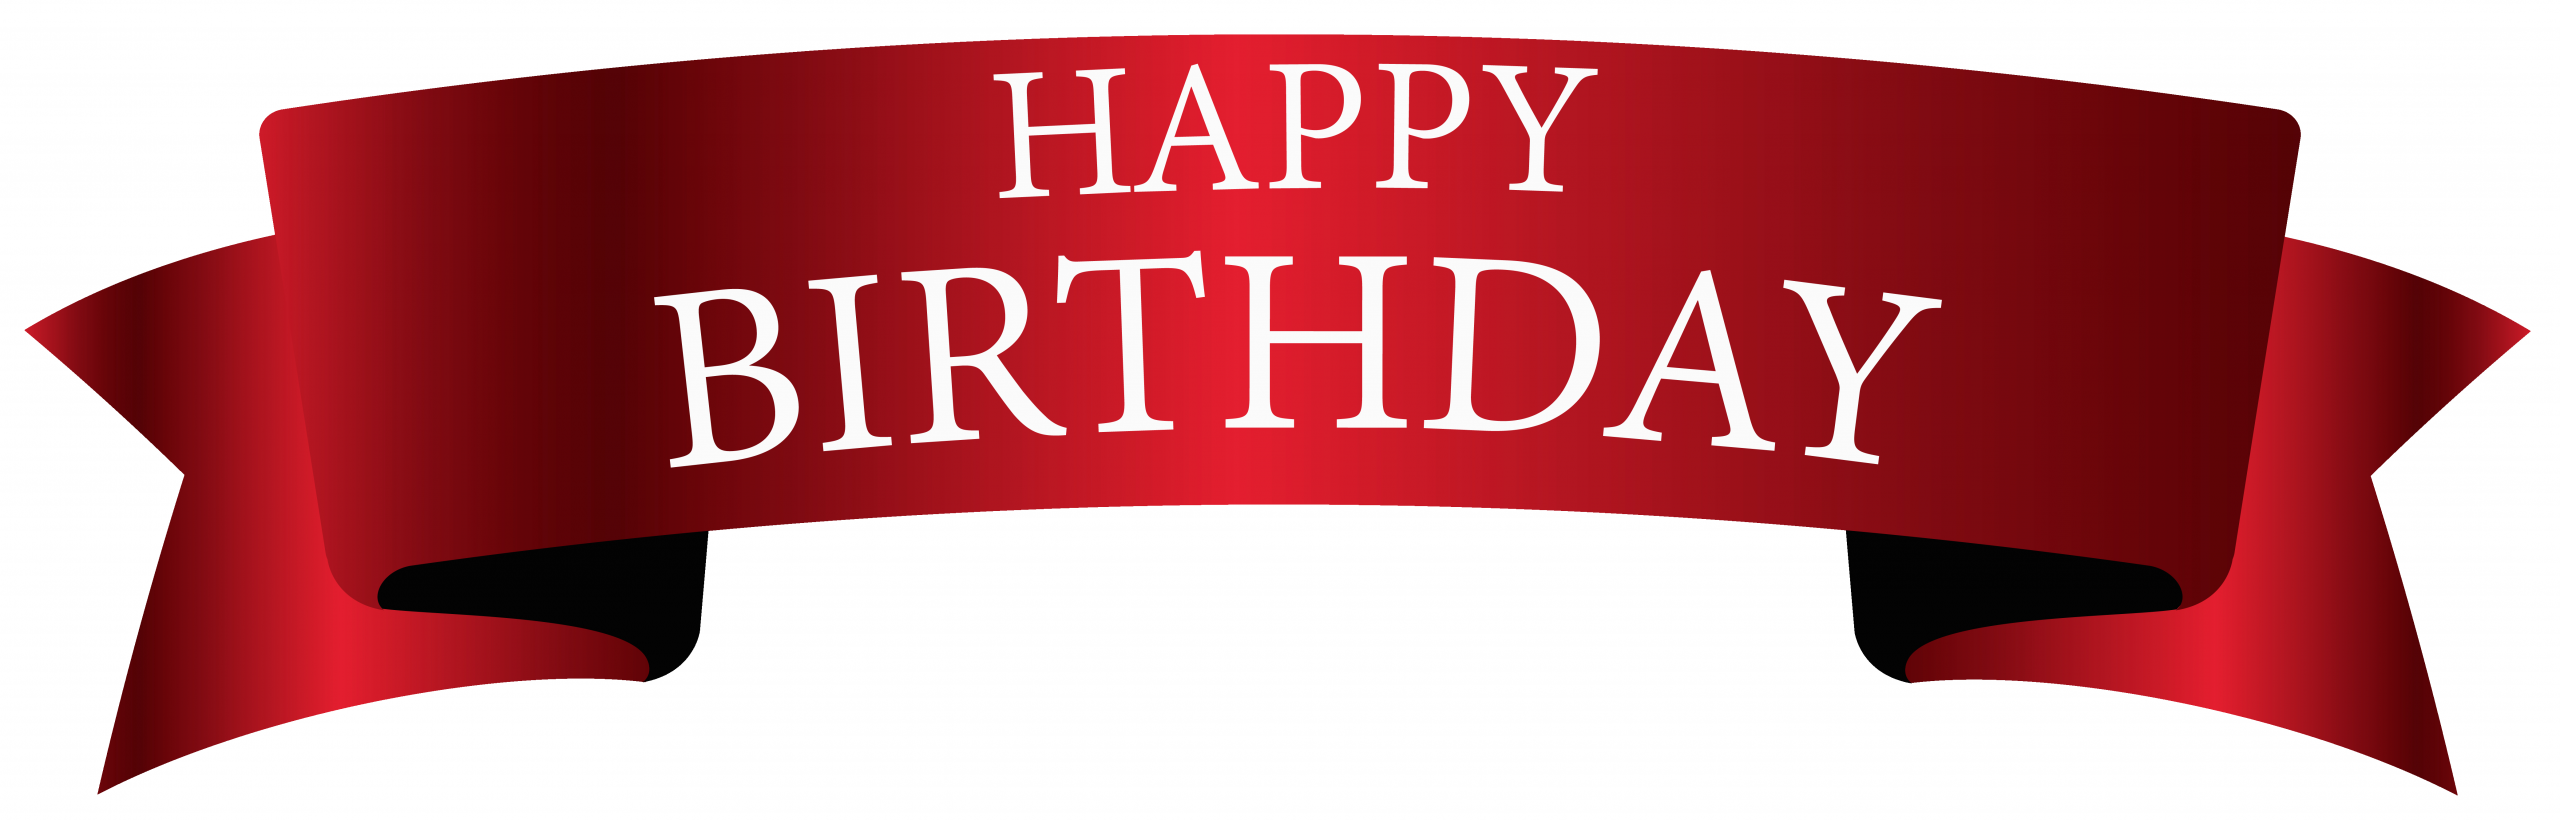 red birthday banner png clipart image